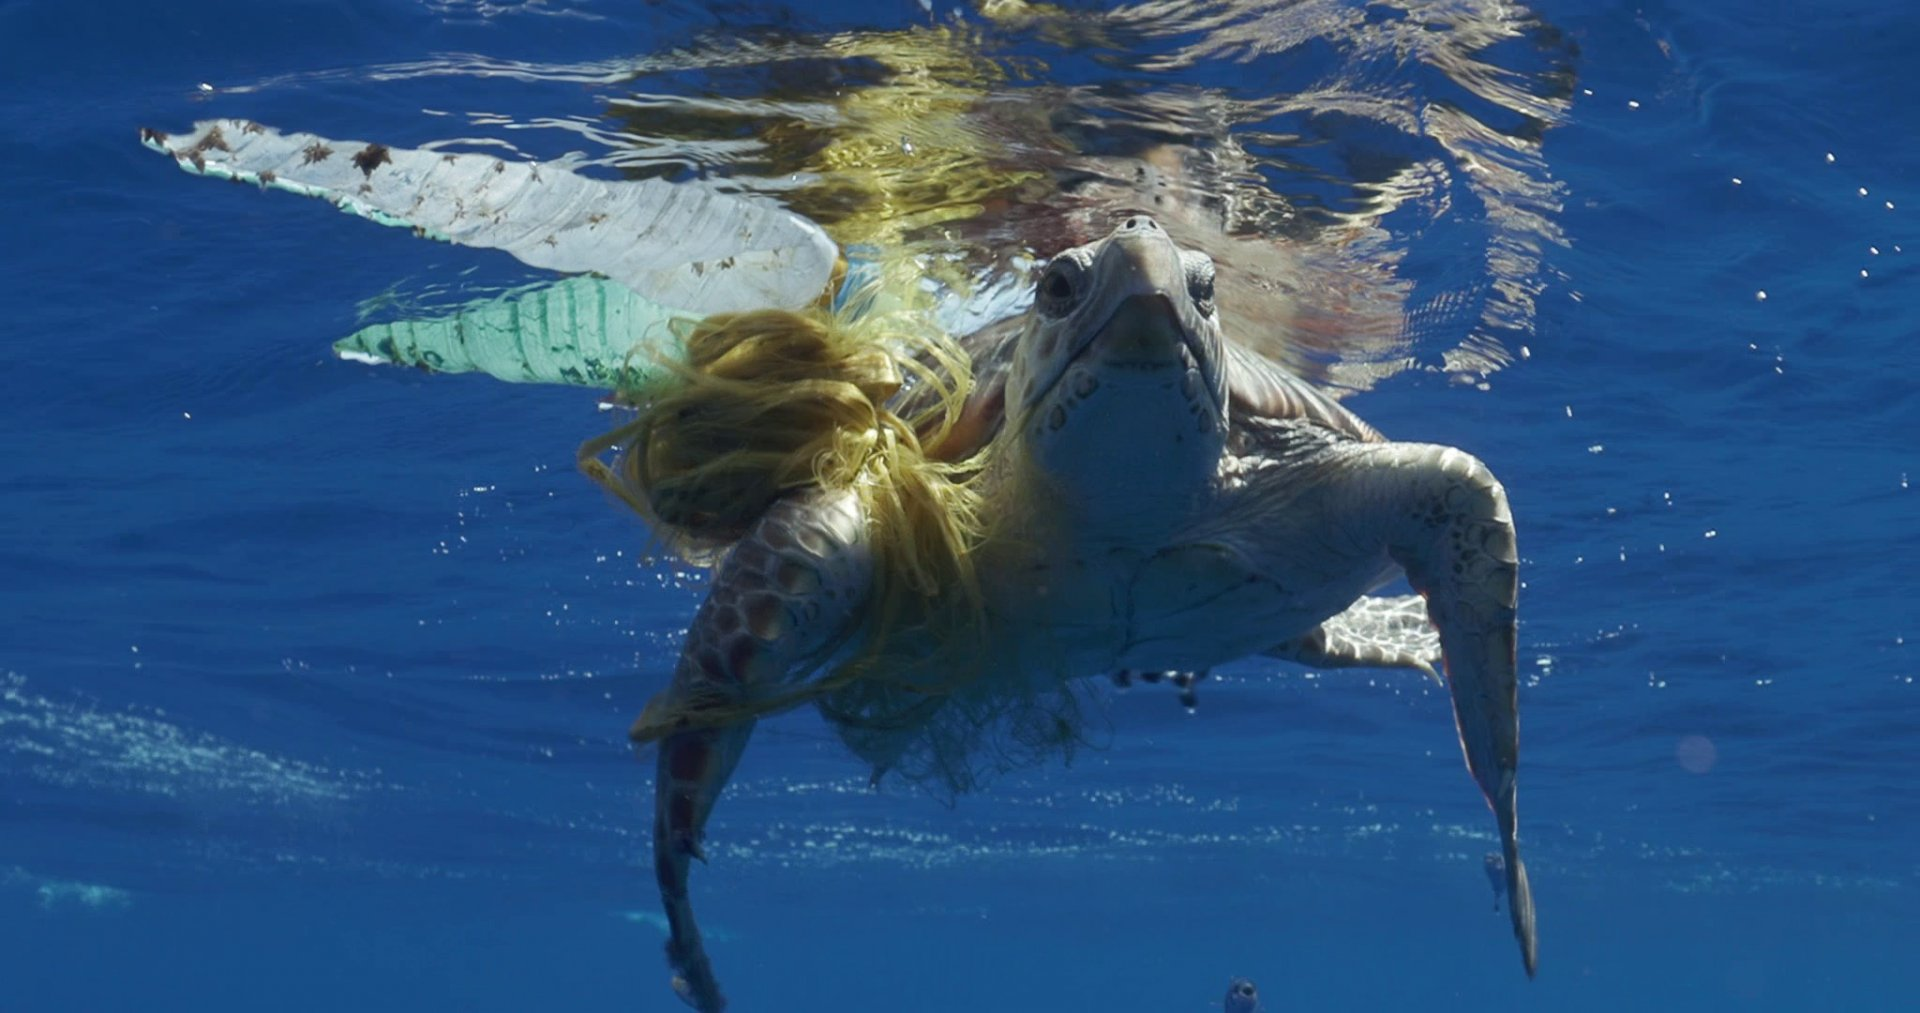 Thunderbird was found entangled by abandoned fishing gear in the Mediterranean © Save the Med Foundation